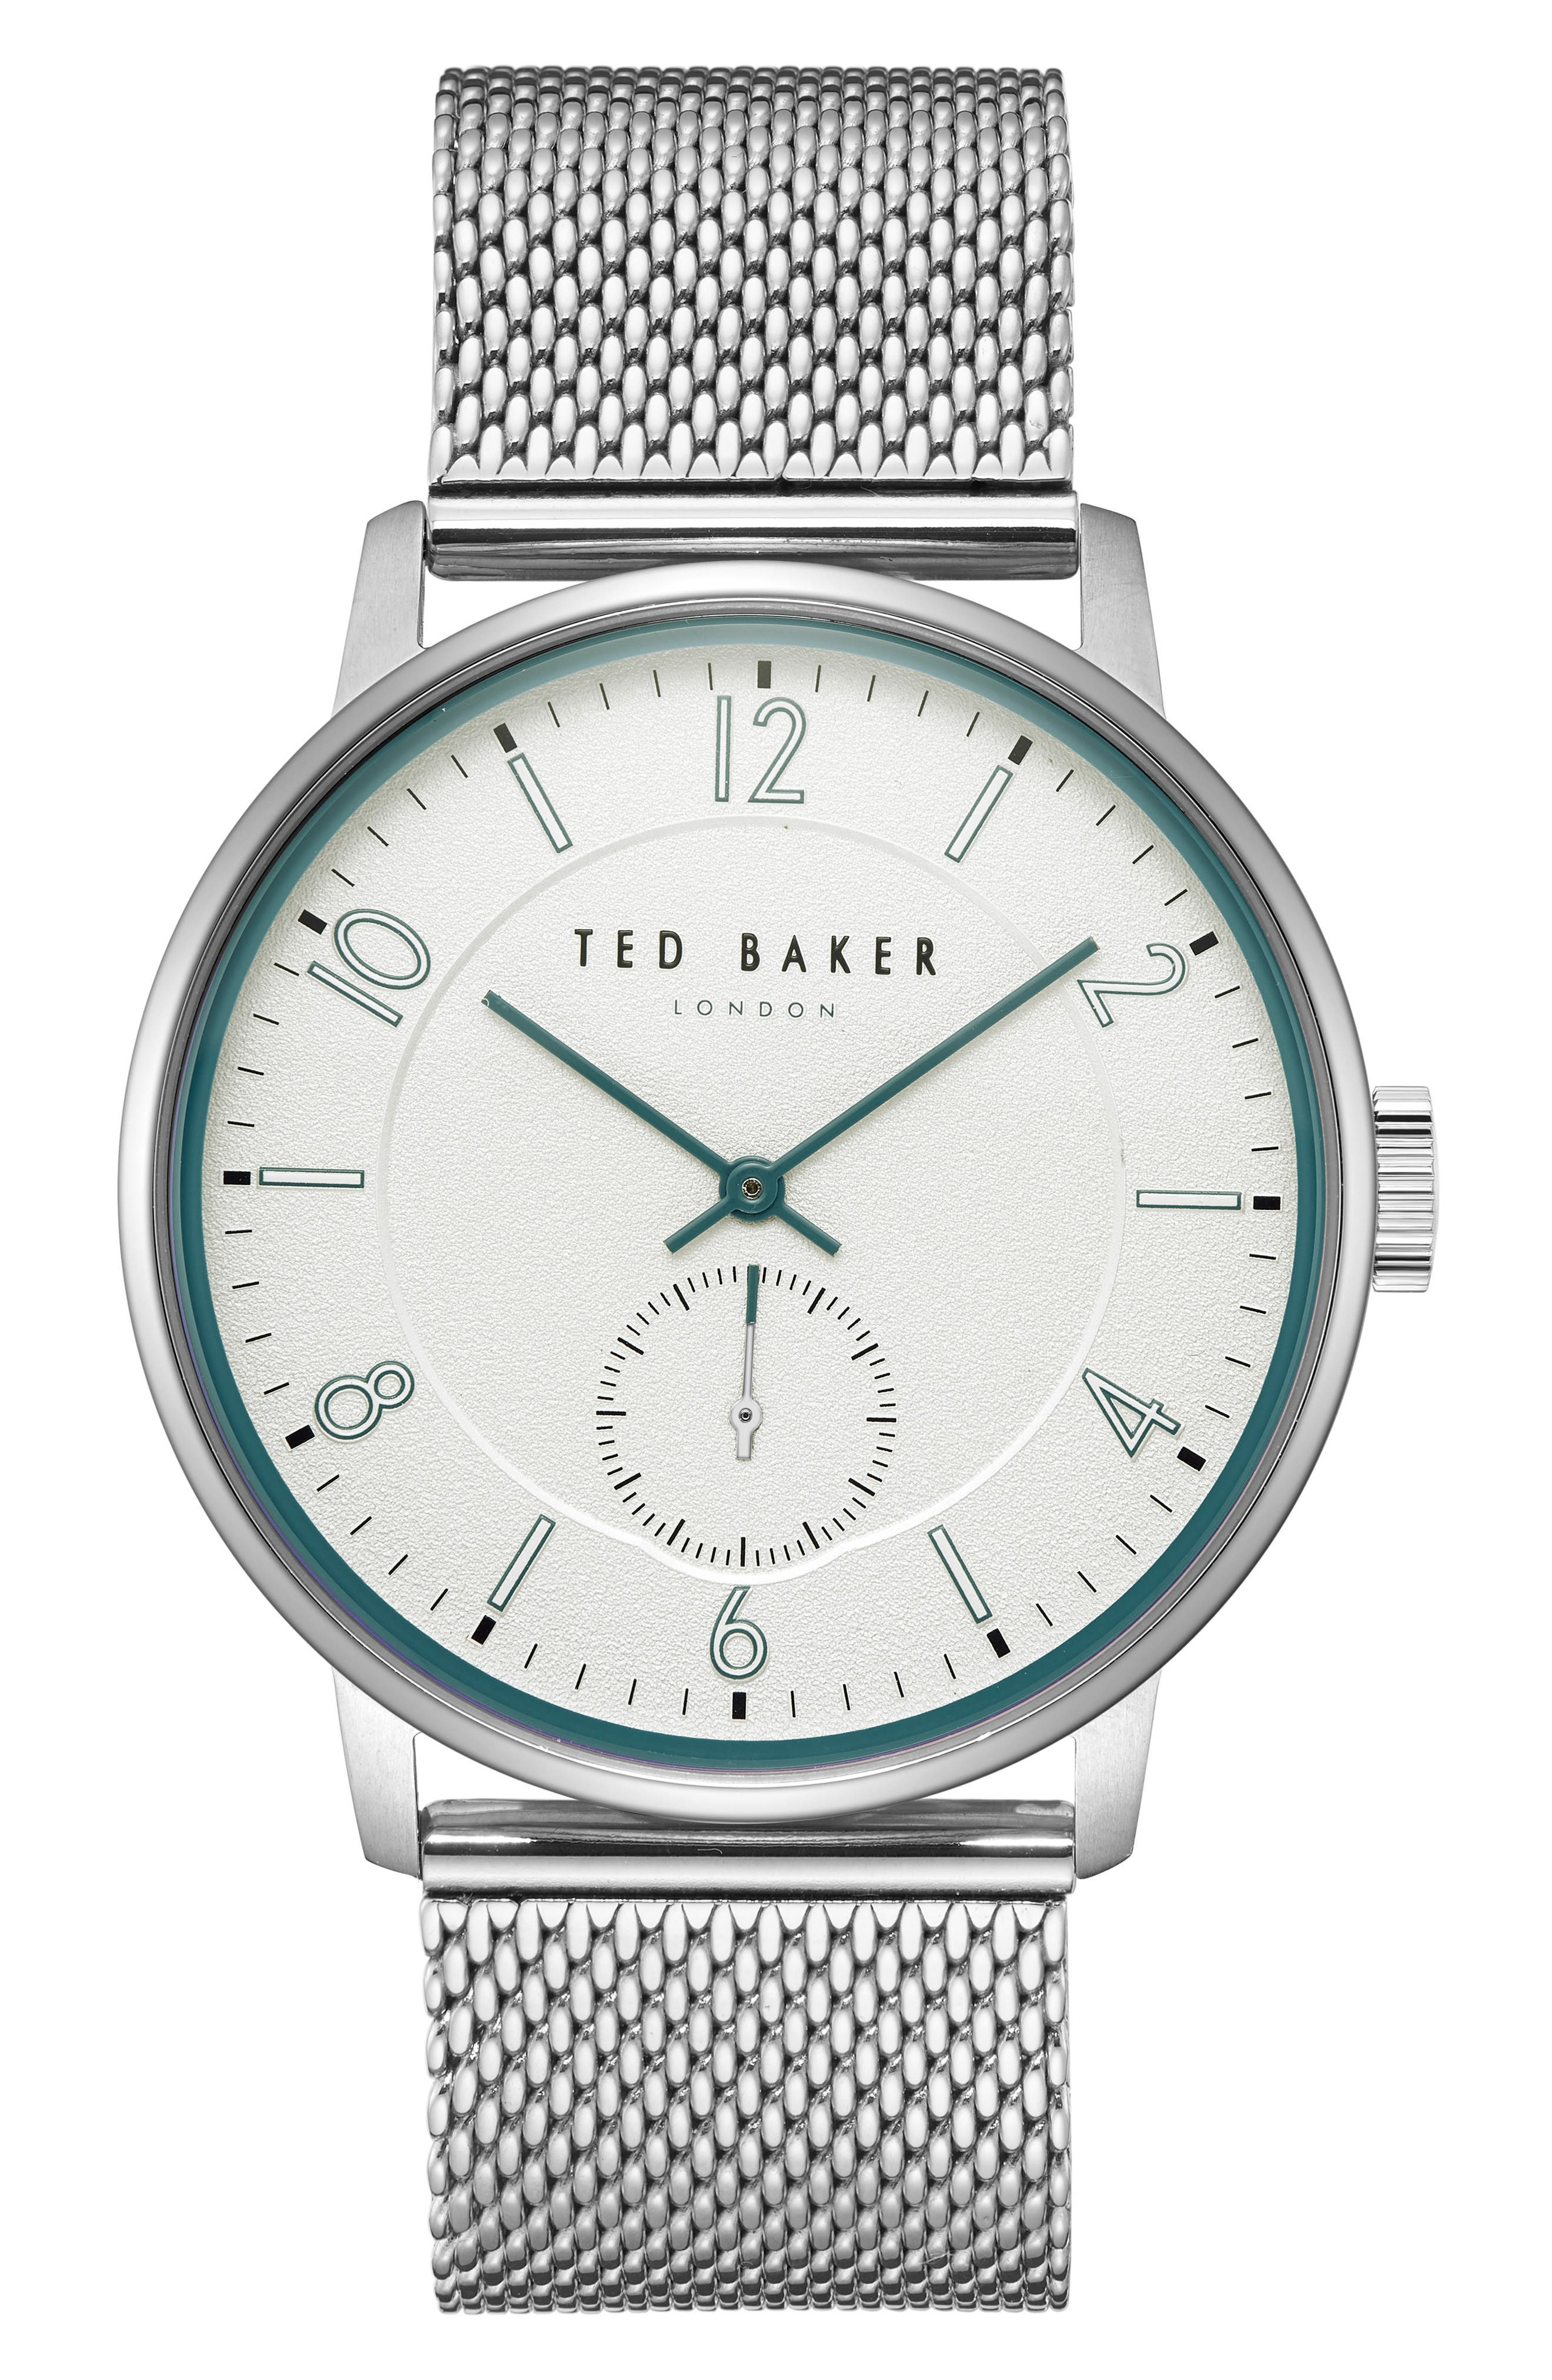 TED BAKER LONDON Owen Mesh Strap Watch, 42mm, Main, color, WHITE/ STAINLESS STEEL